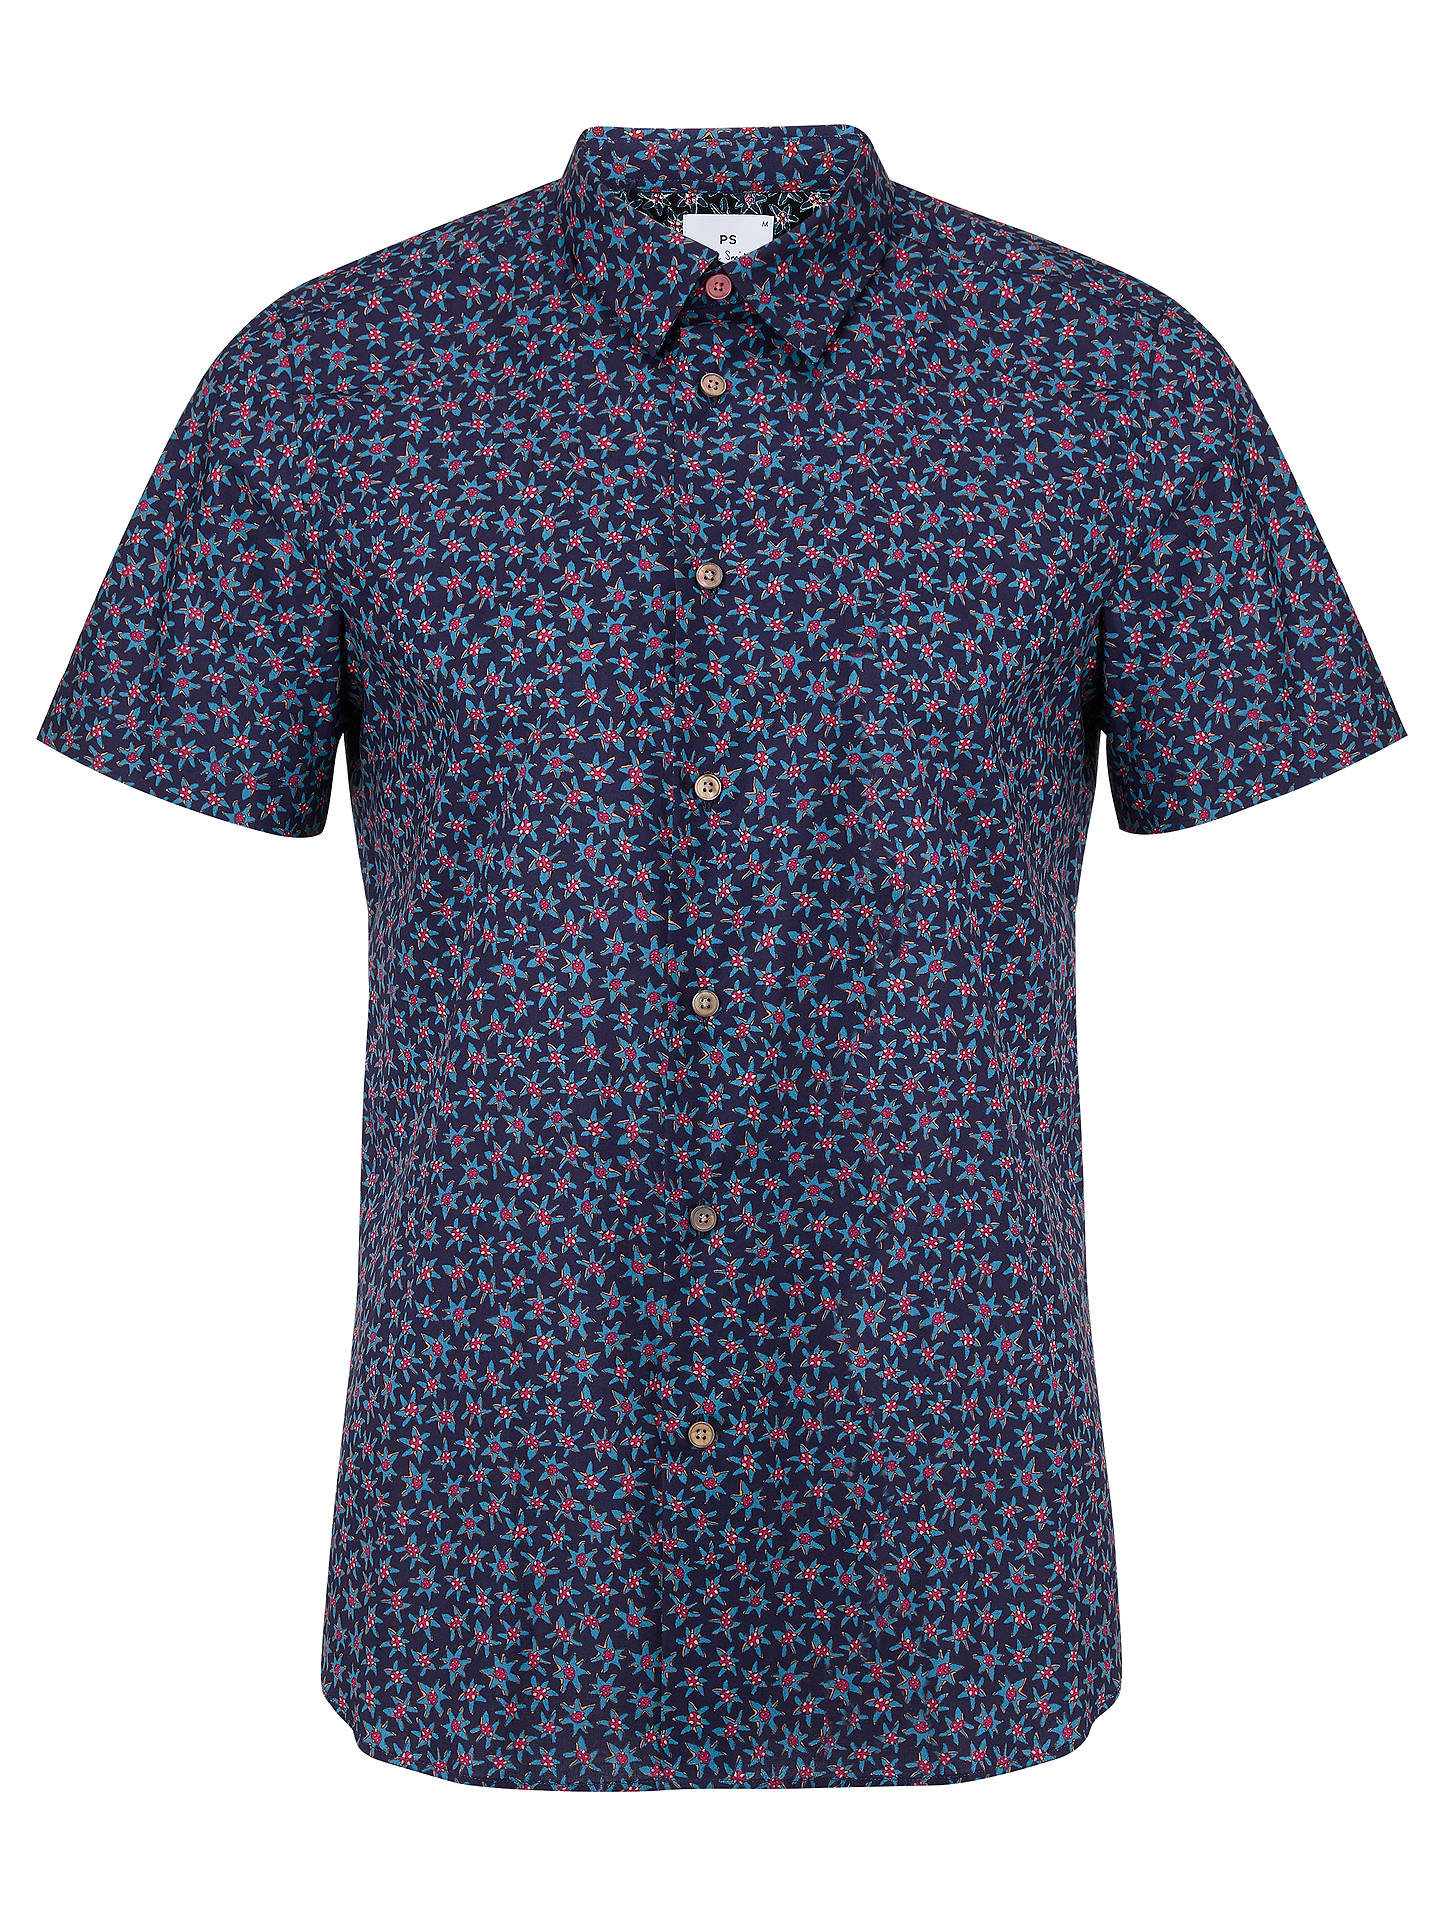 Buy PS Paul Smith Artist Short Sleeve Floral Shirt, Blue, L Online at johnlewis.com